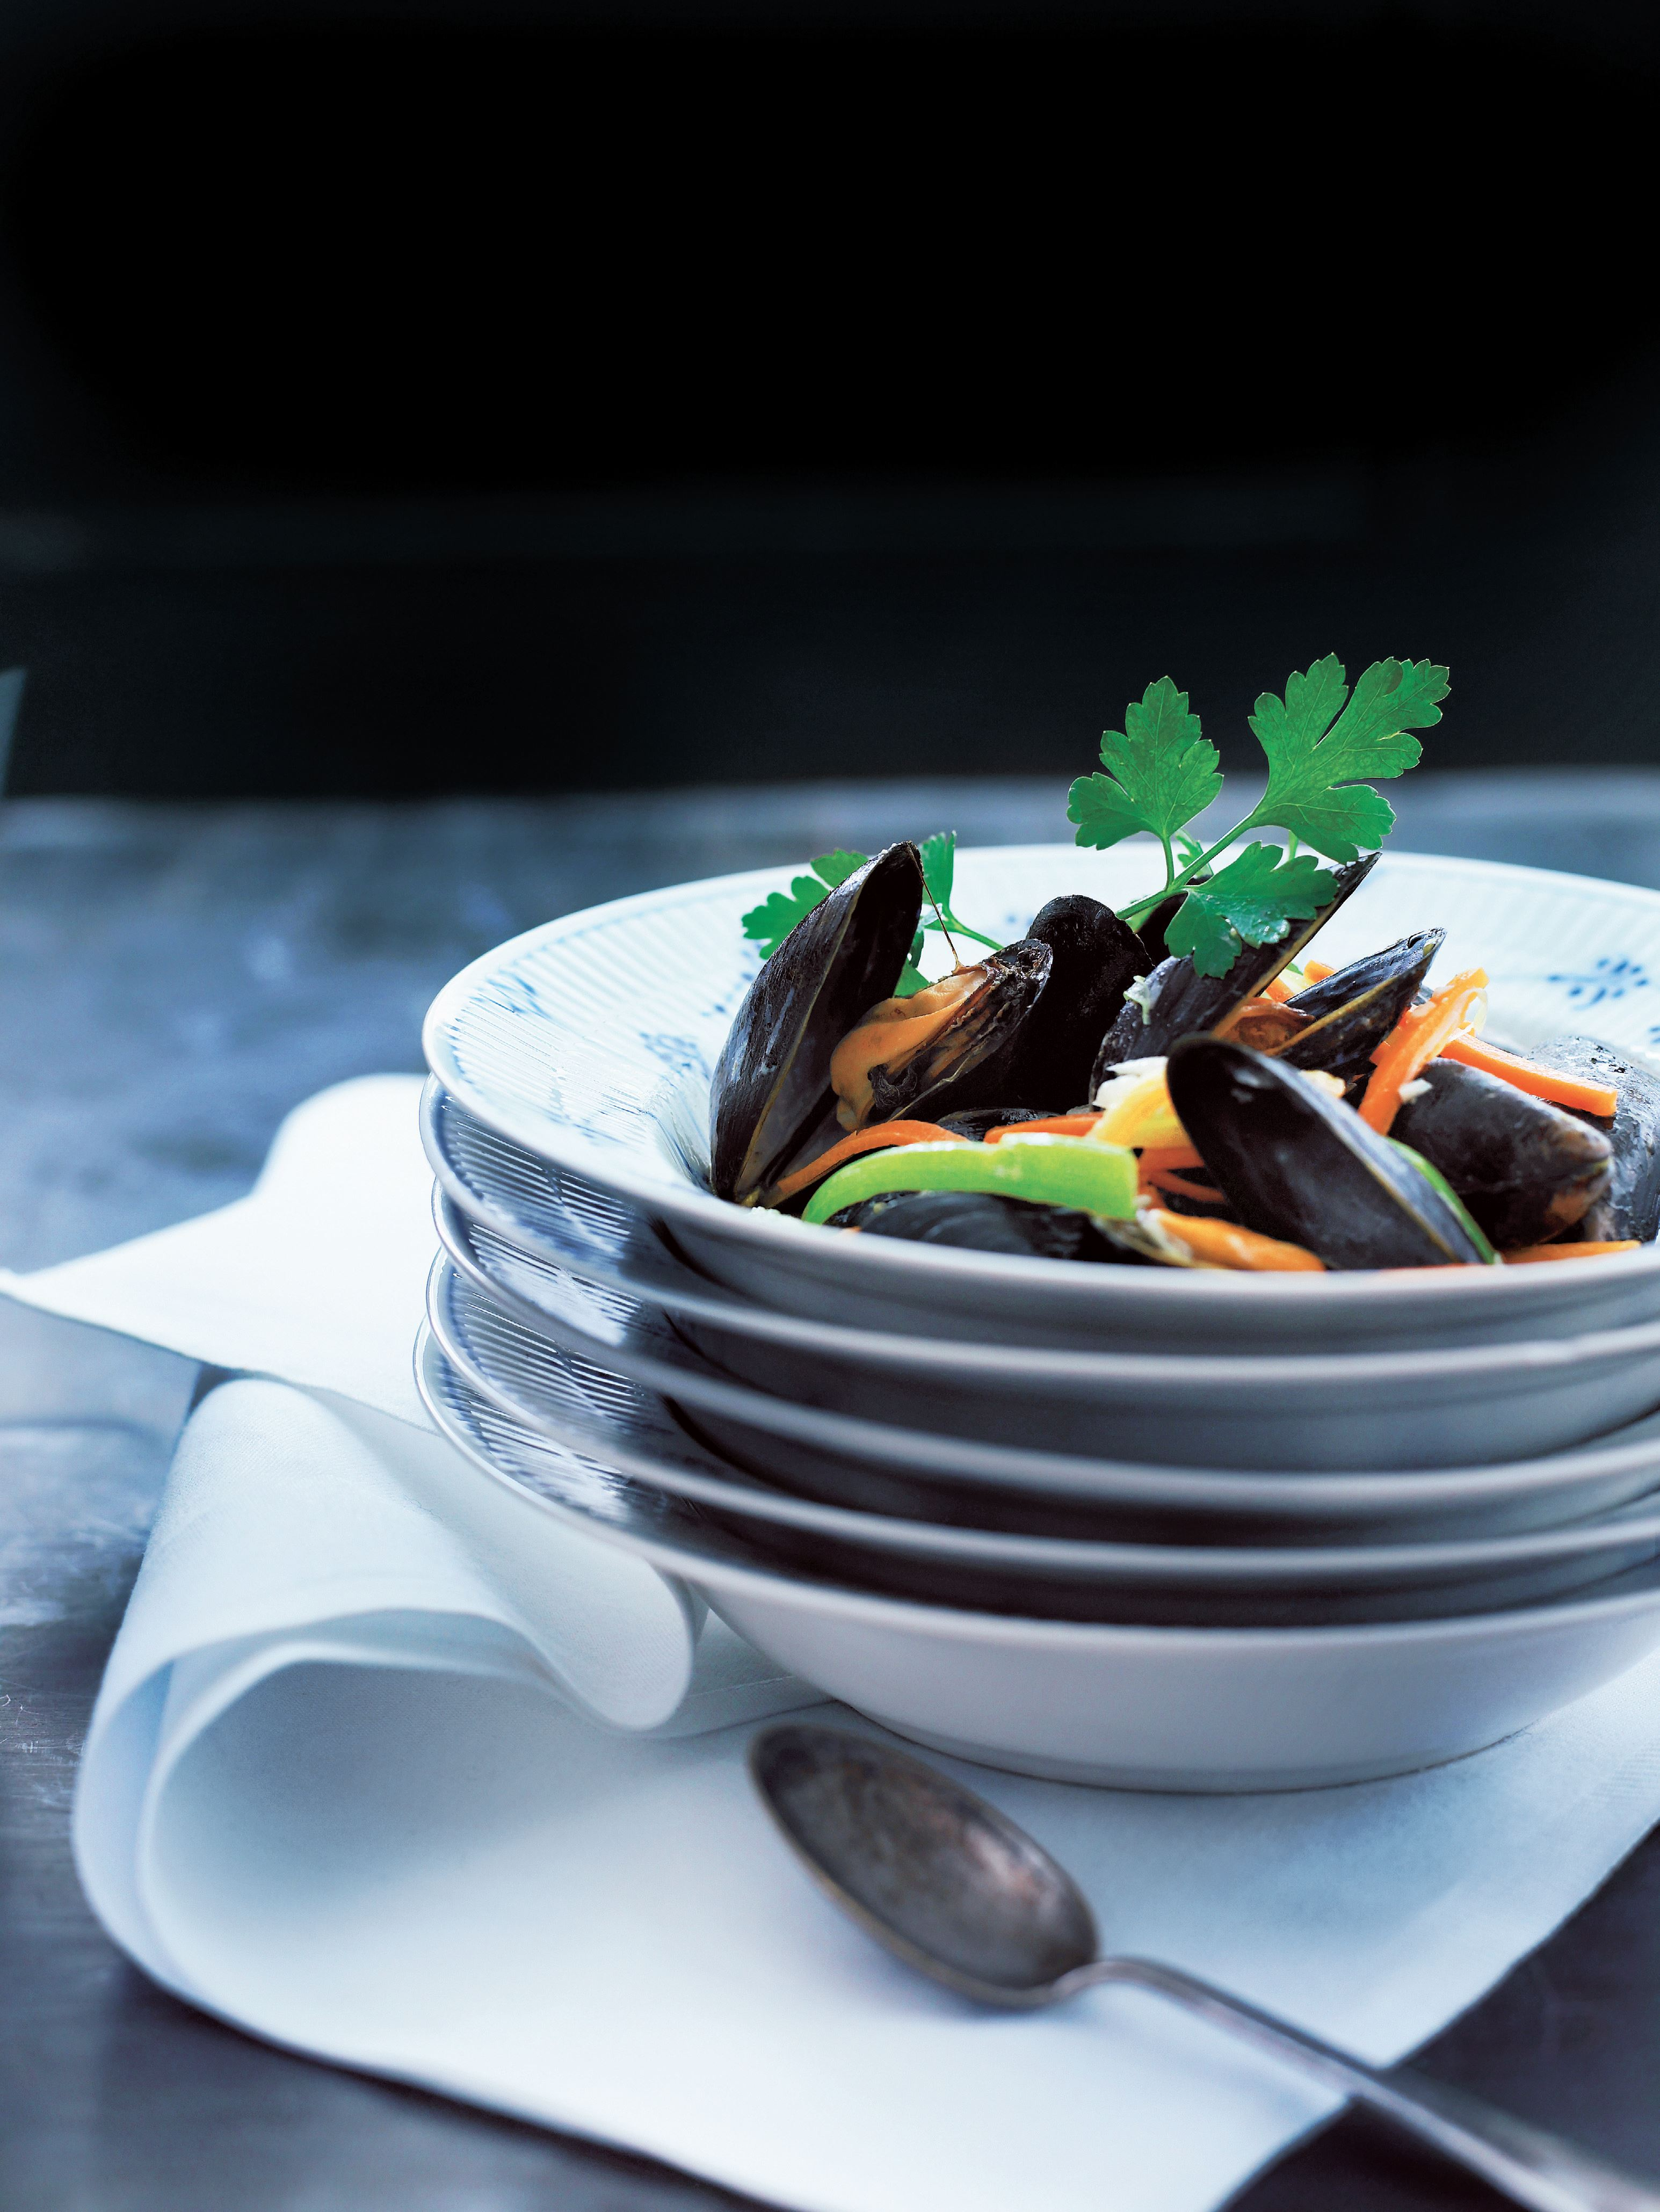 Limfjords mussels steamed in wine, vegetables and parsley